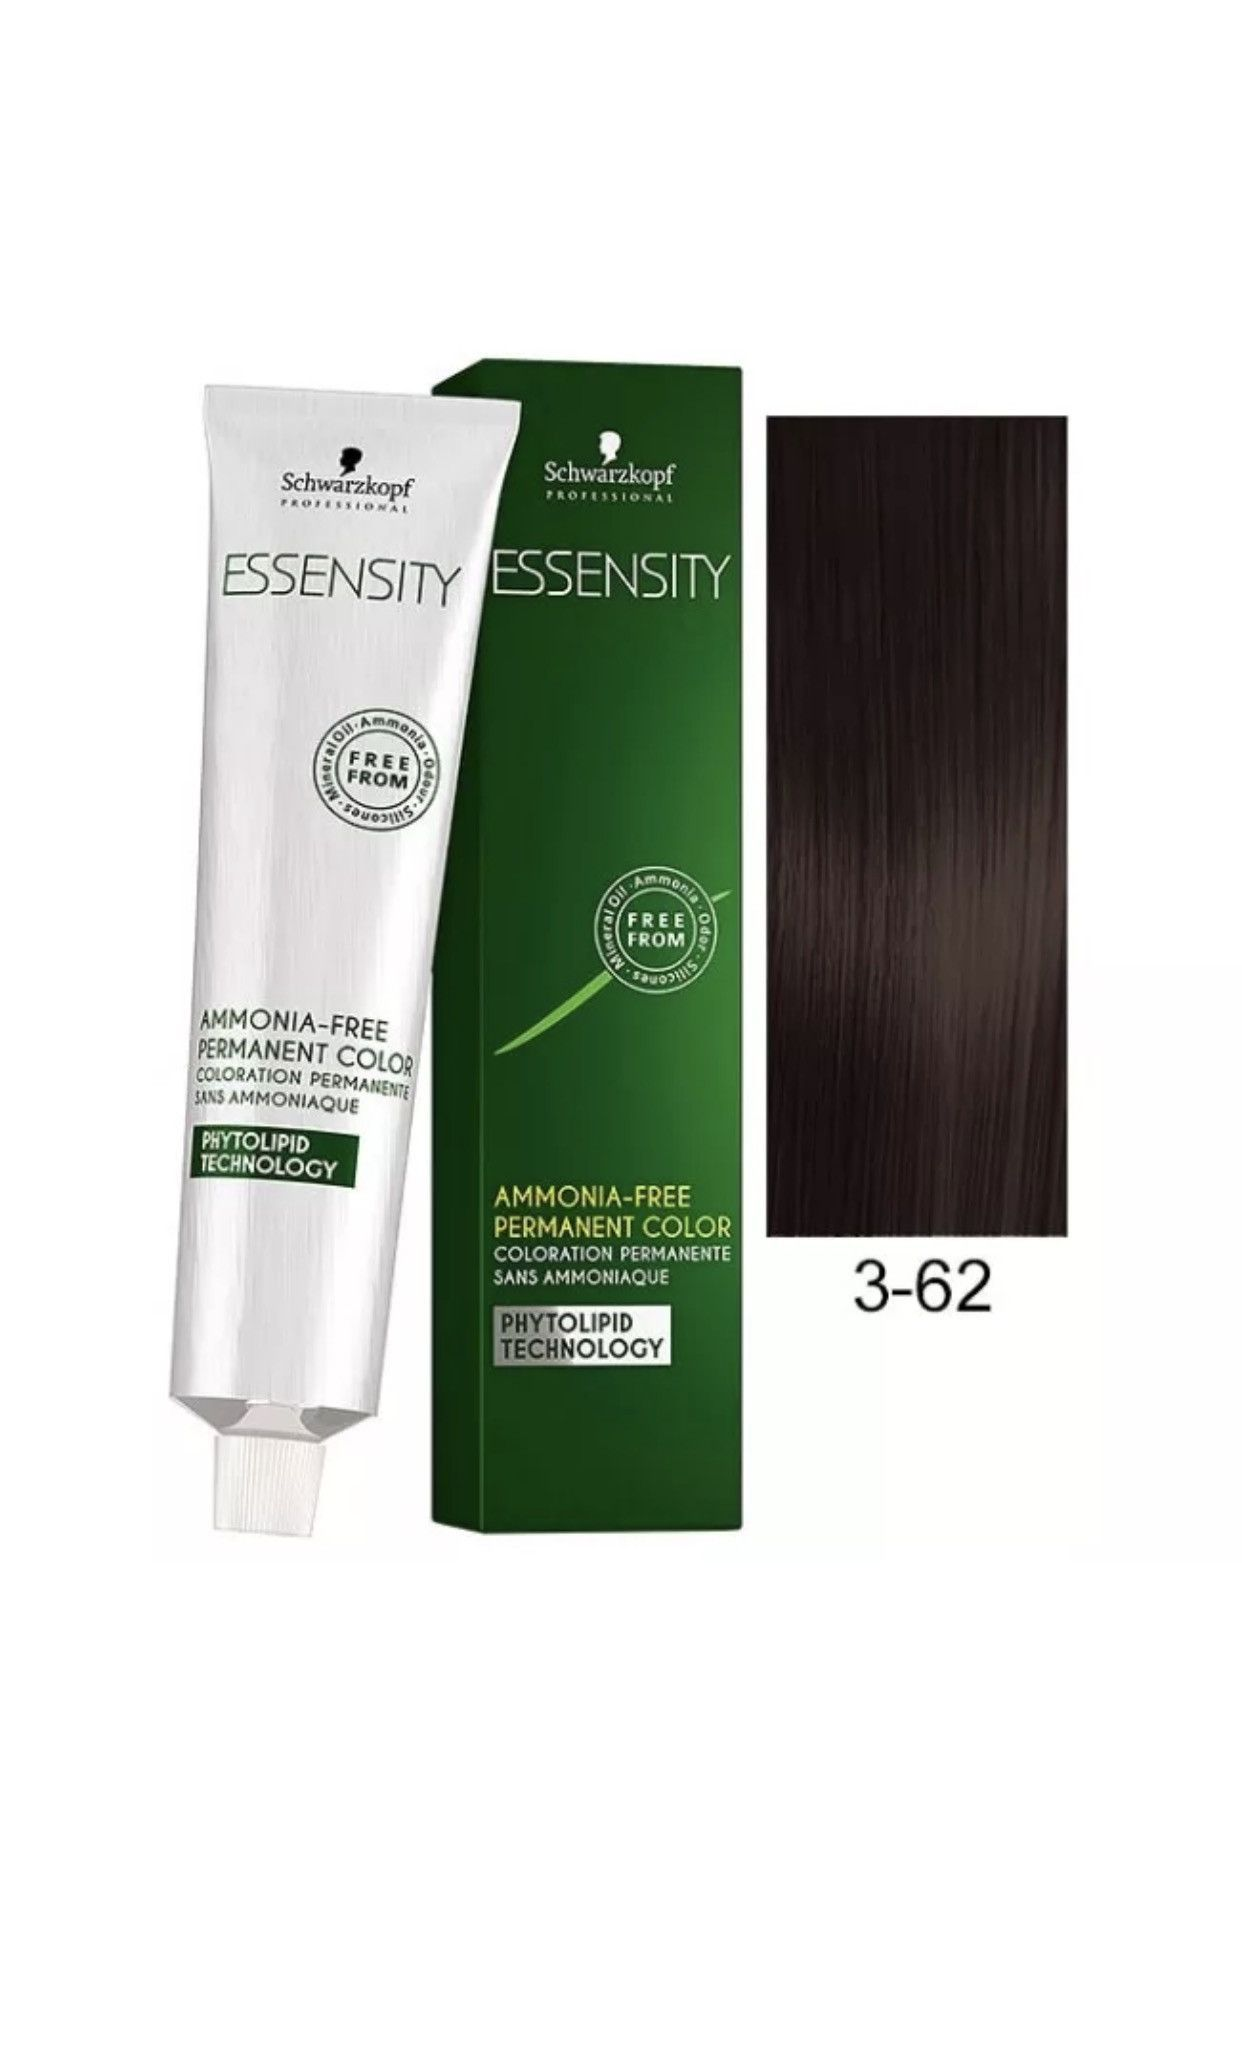 Schwarzkopf Essensity Professional Hair color | Products | Pinterest ...